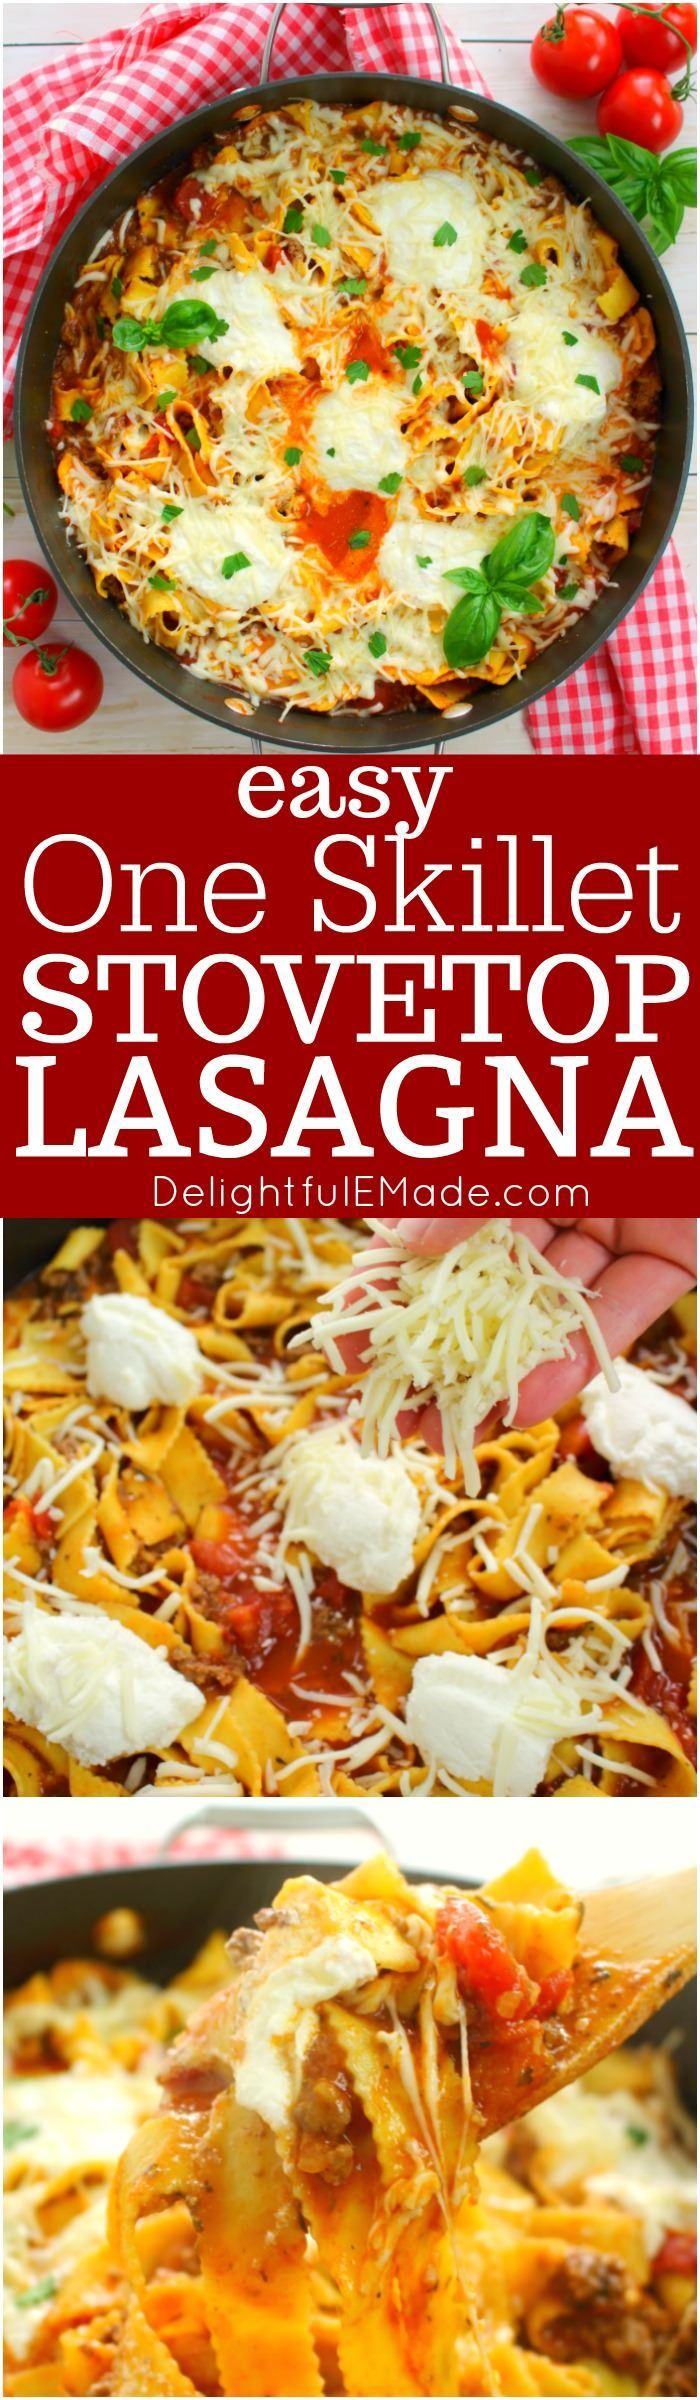 Need a quick and easy dinner solution? This One Skillet Stove Top Lasagna is perfect for busy weeknights when you're rushed for time. Made with everyday staples from ALDI, this delicious and simple pasta recipe will be a new favorite with everyone in your family! #ad #ALDILove #stovetoplasagna #oneskilletlasagna #lasagna #DelightfulEMade